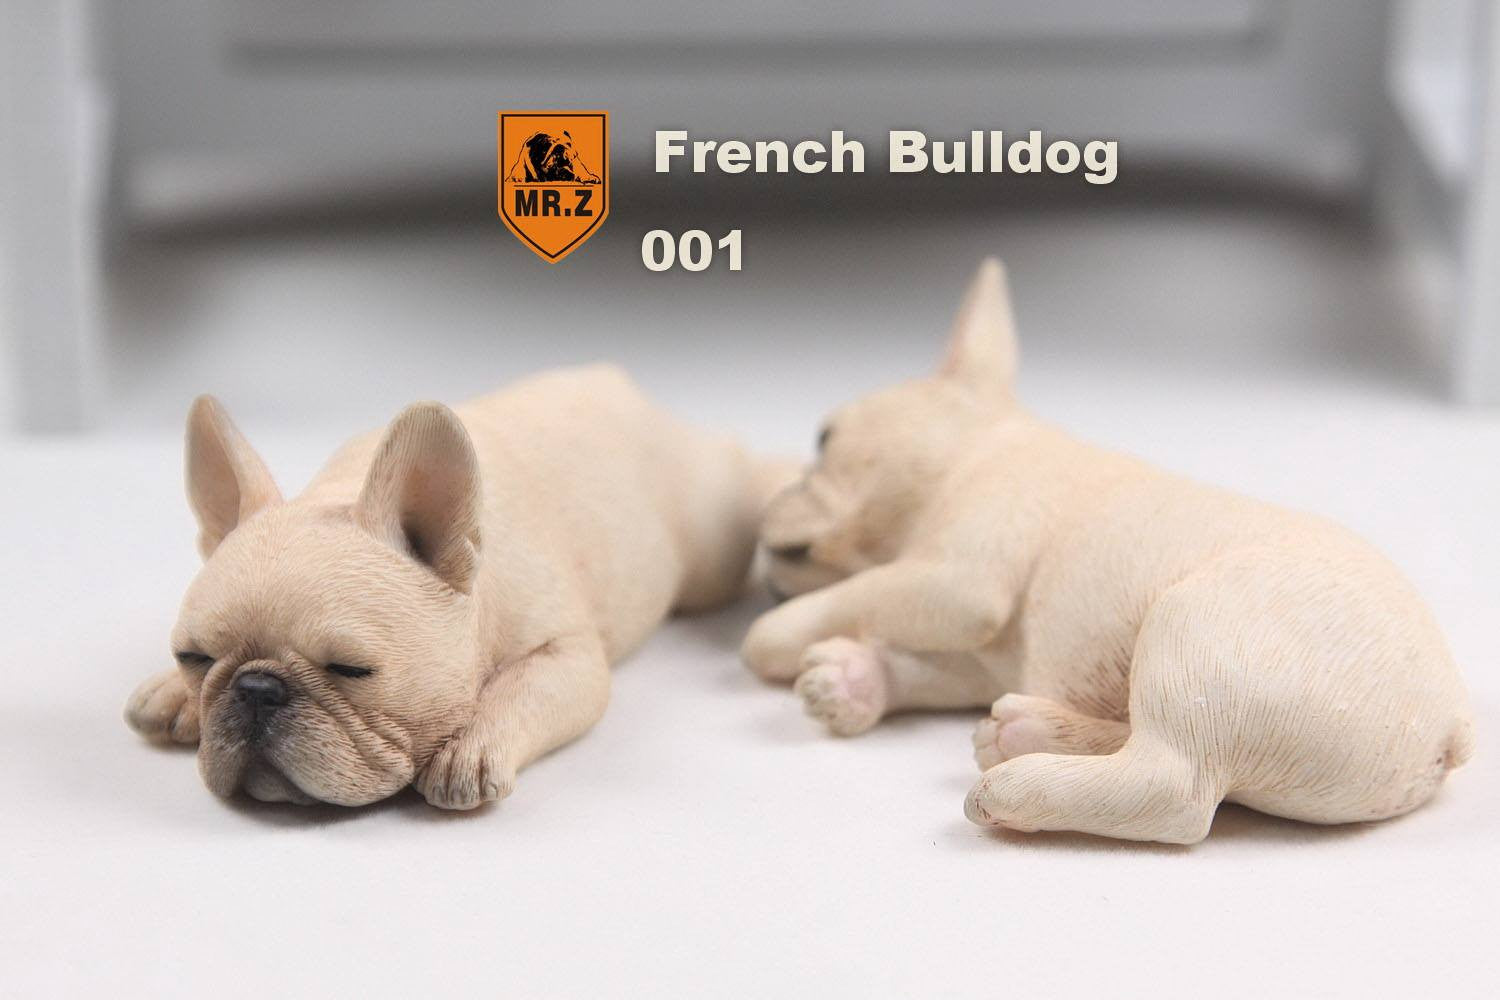 MR.Z - Real Animal Series No.9 - 1/6th Scale French Bulldog (Sleep Mode) 001-005 - Marvelous Toys - 3